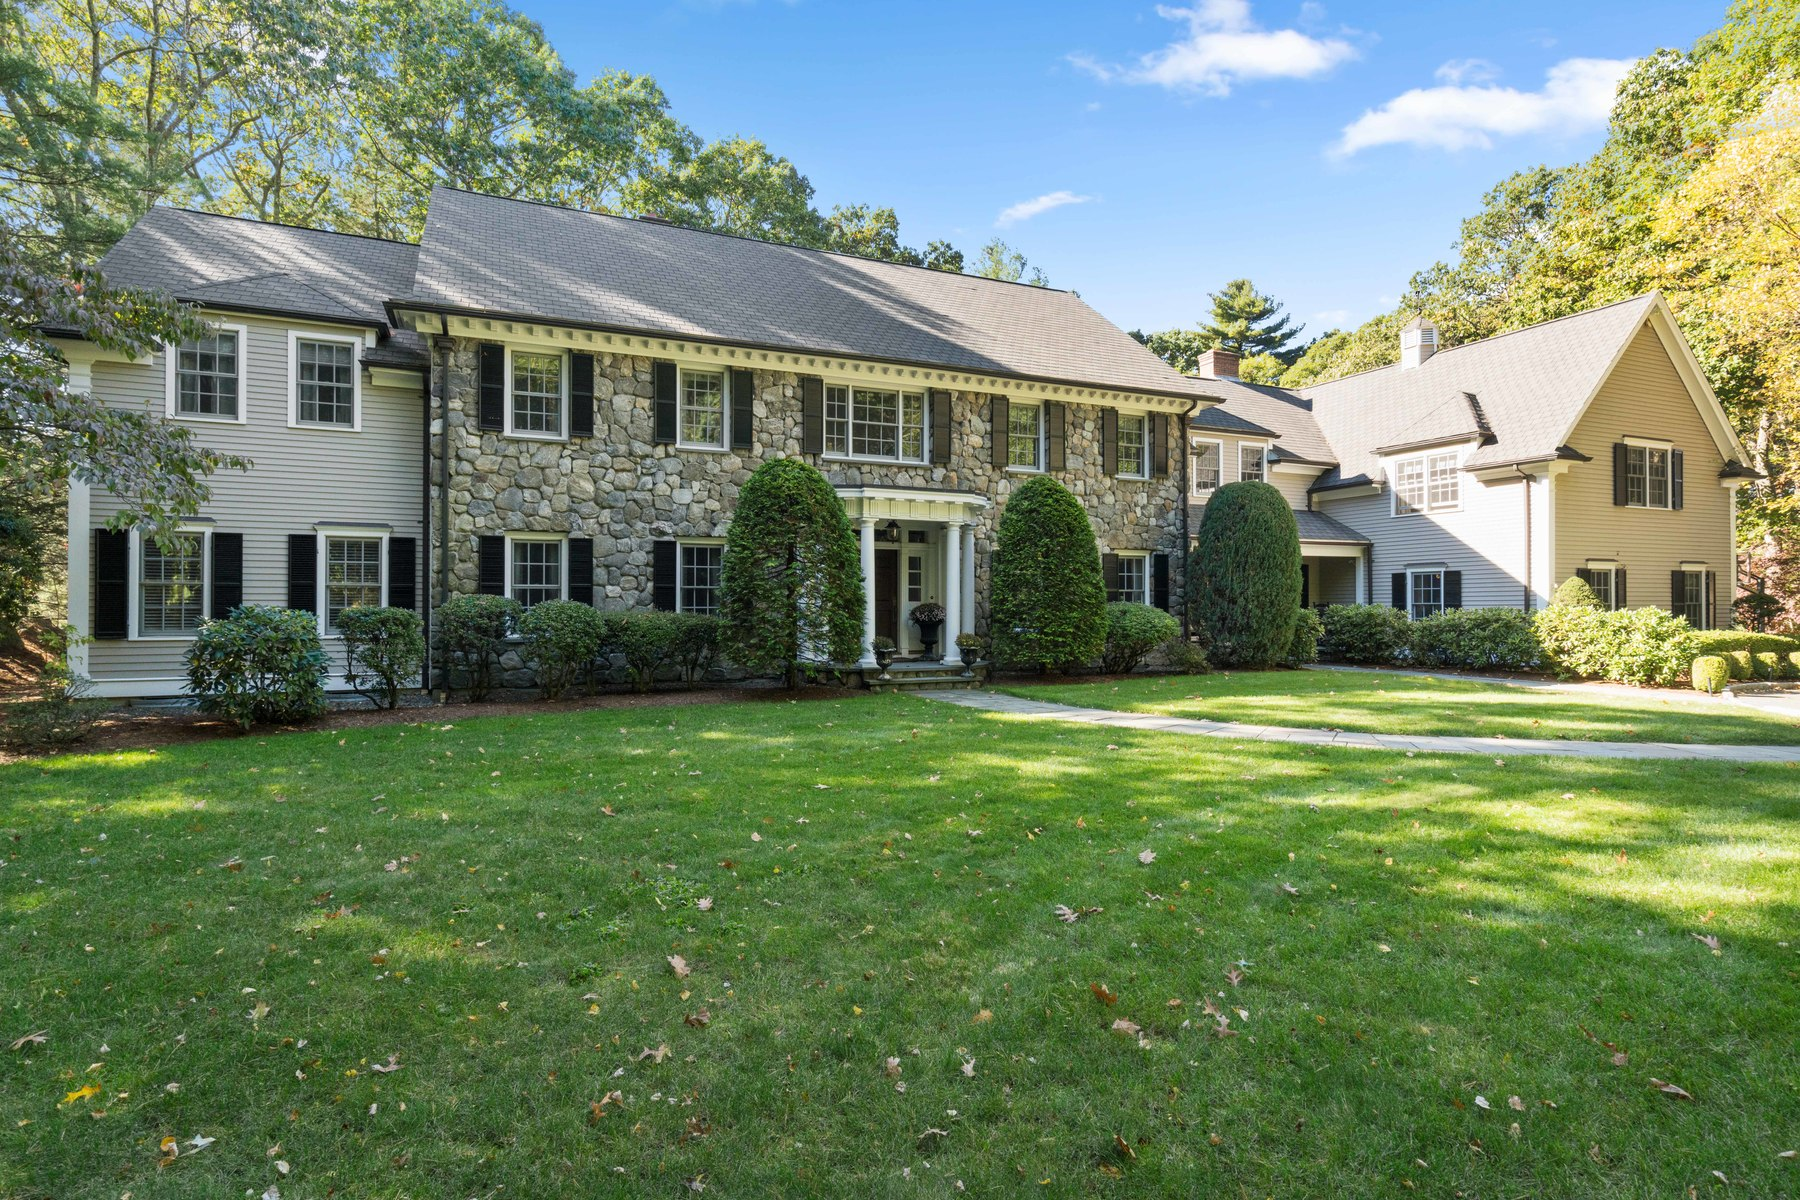 Single Family Home for Sale at Distinctive Stonefront Colonial 50 Conant Road, Weston, Massachusetts, 02493 United States